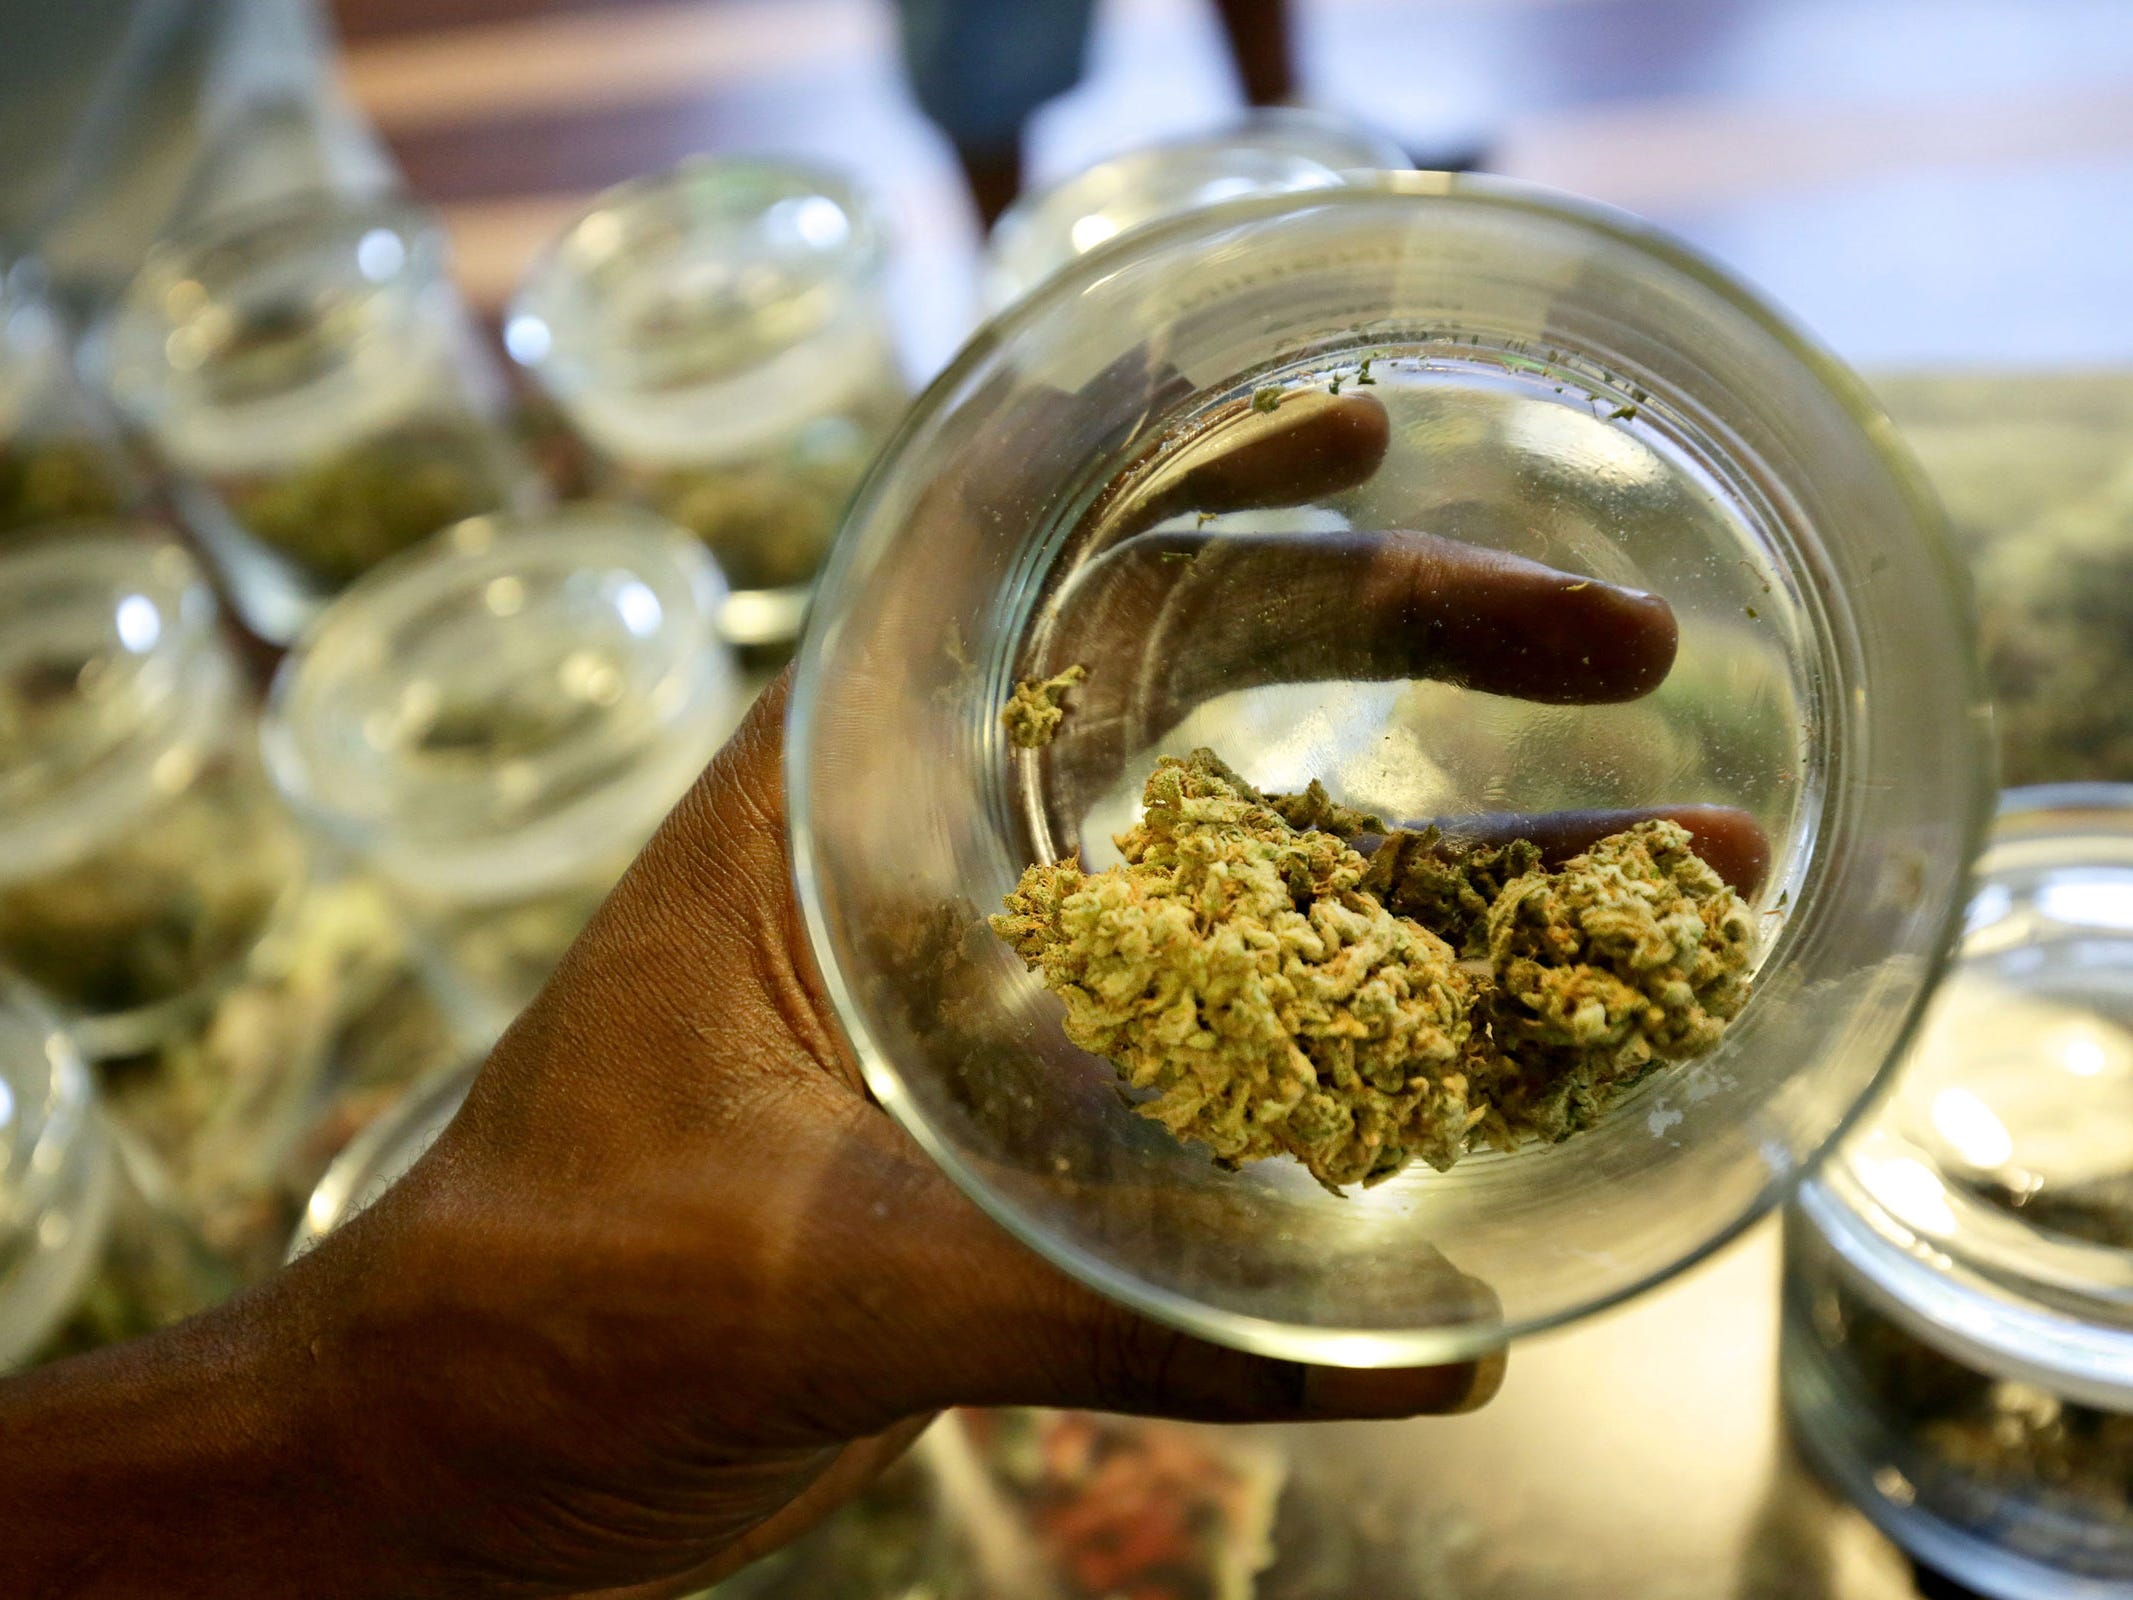 Suburban cities are opting out of legal weed sales. What happens next?